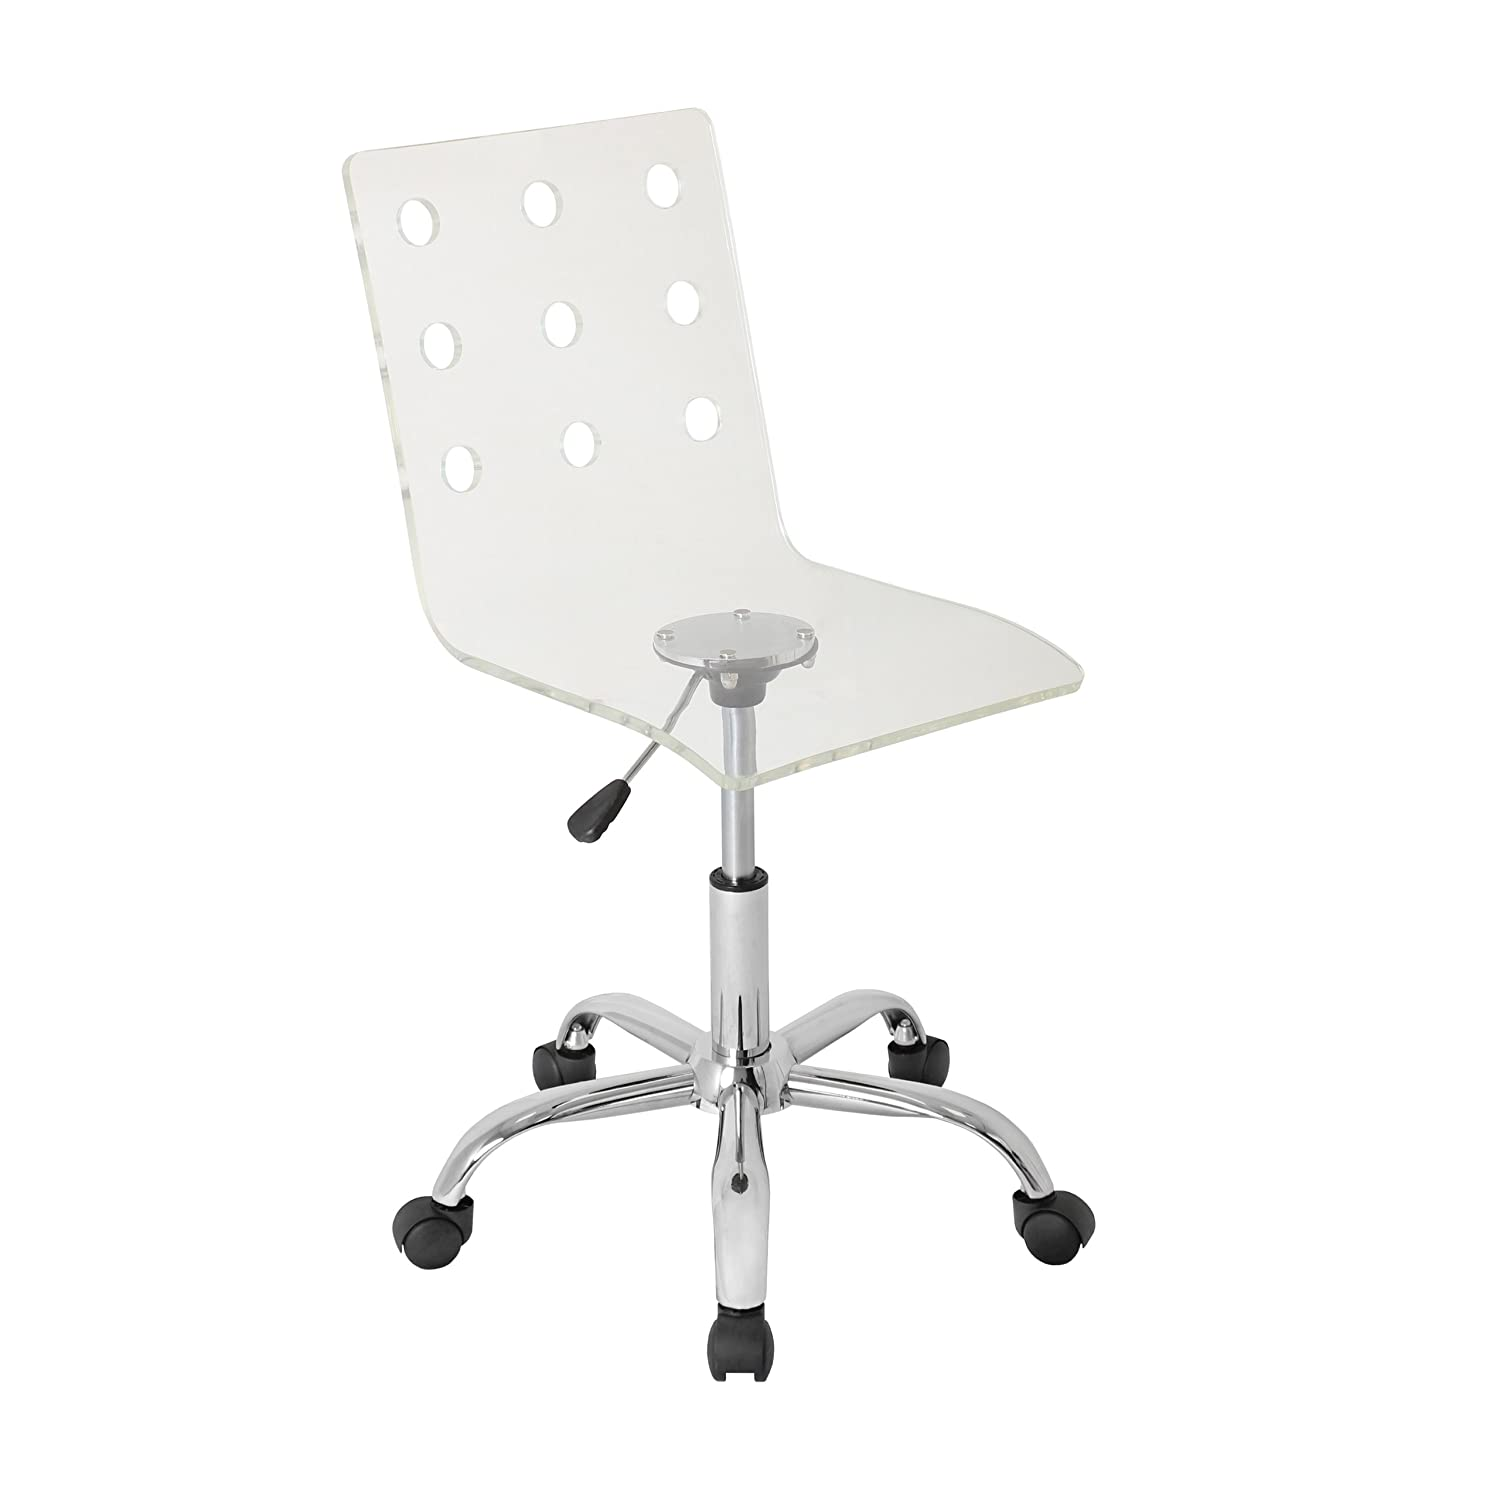 Amazon WOYBR OFC TW CL Acrylic Chrome Swiss fice Chair